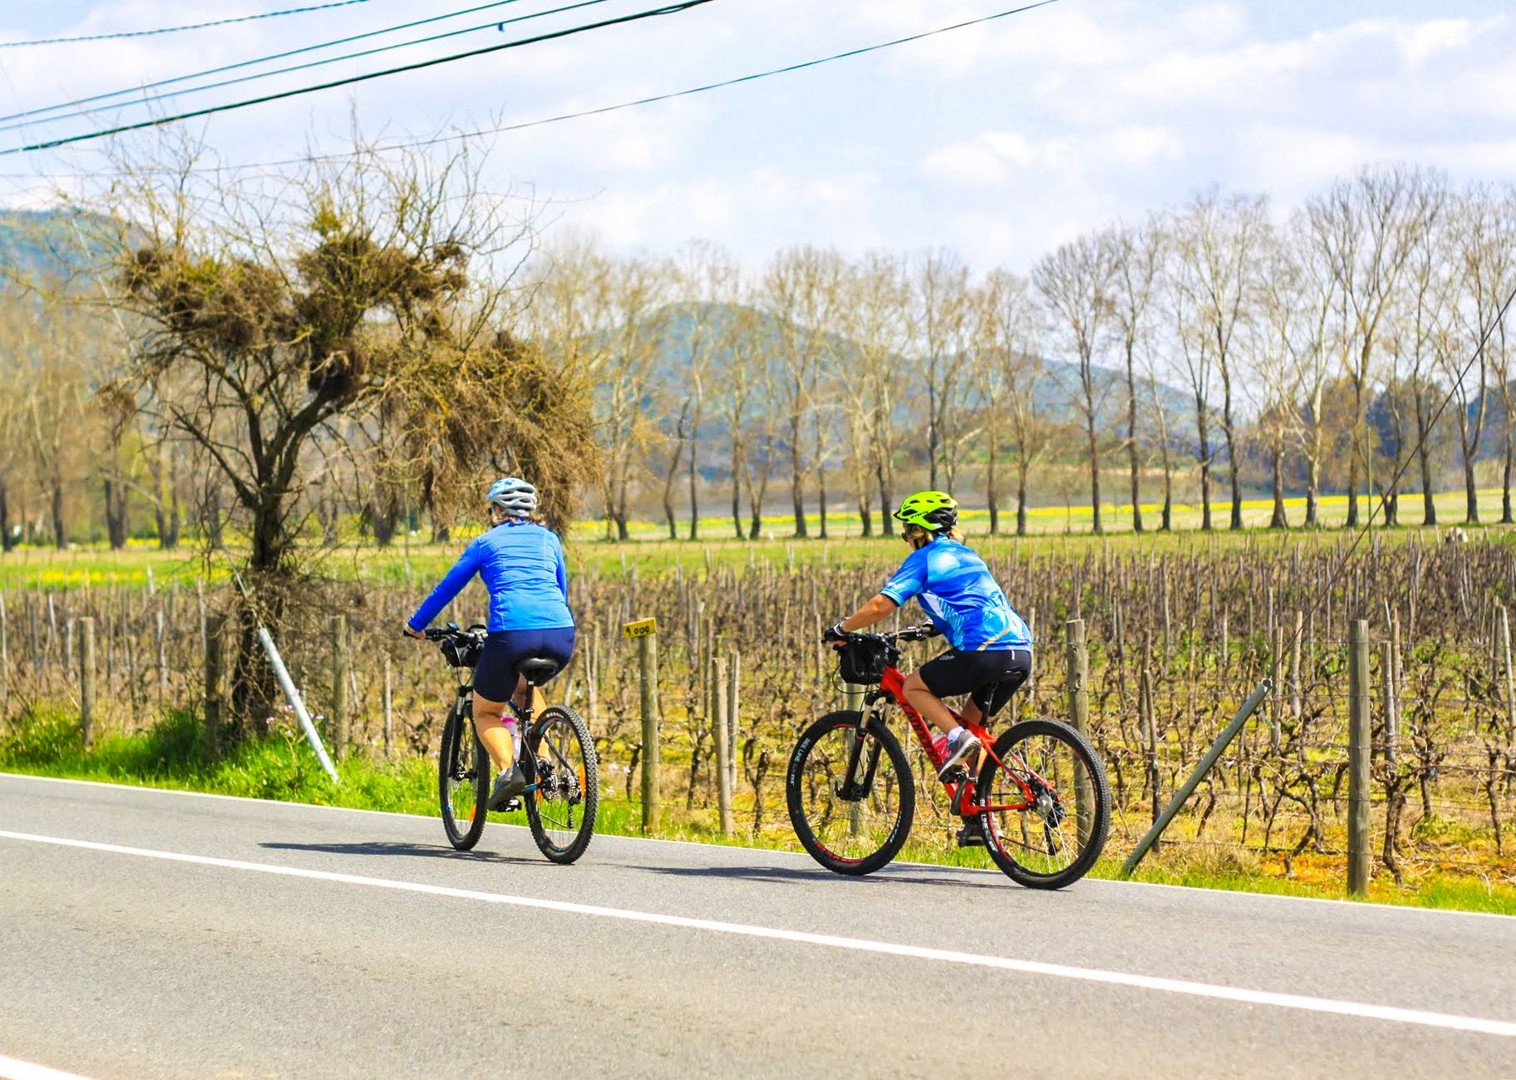 IMG_9414.jpg - Chile - Wine Country - Cycling Adventures